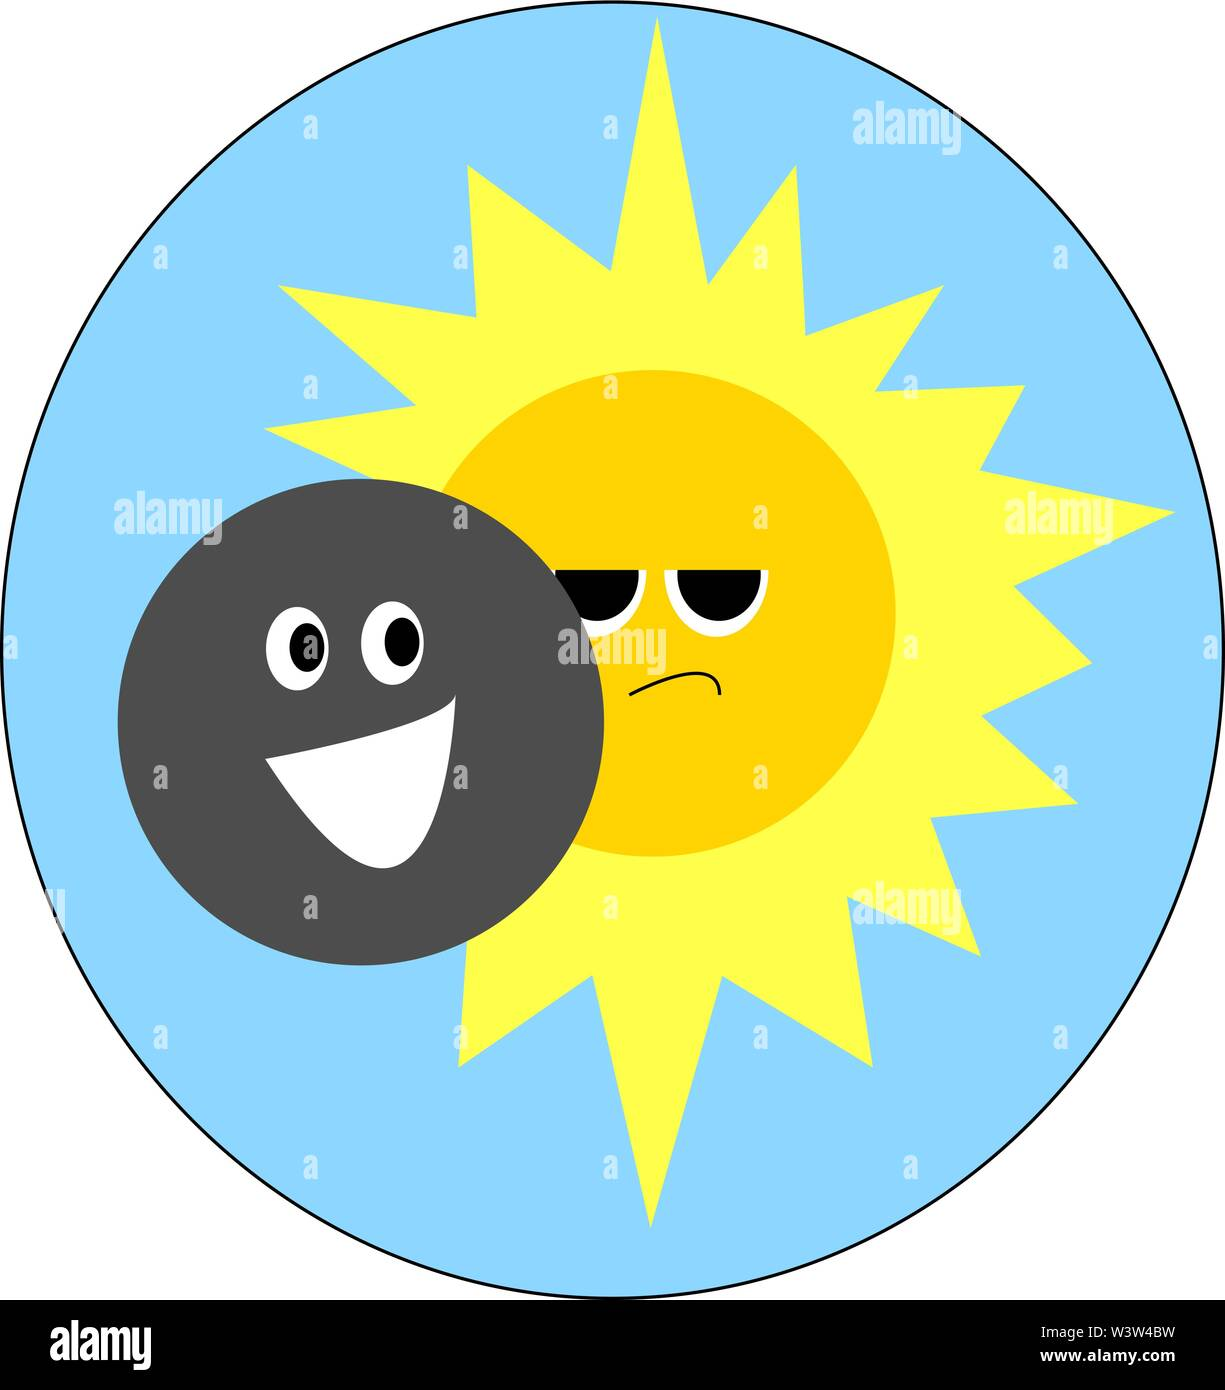 Sun and moon, illustration, vector on white background. - Stock Image